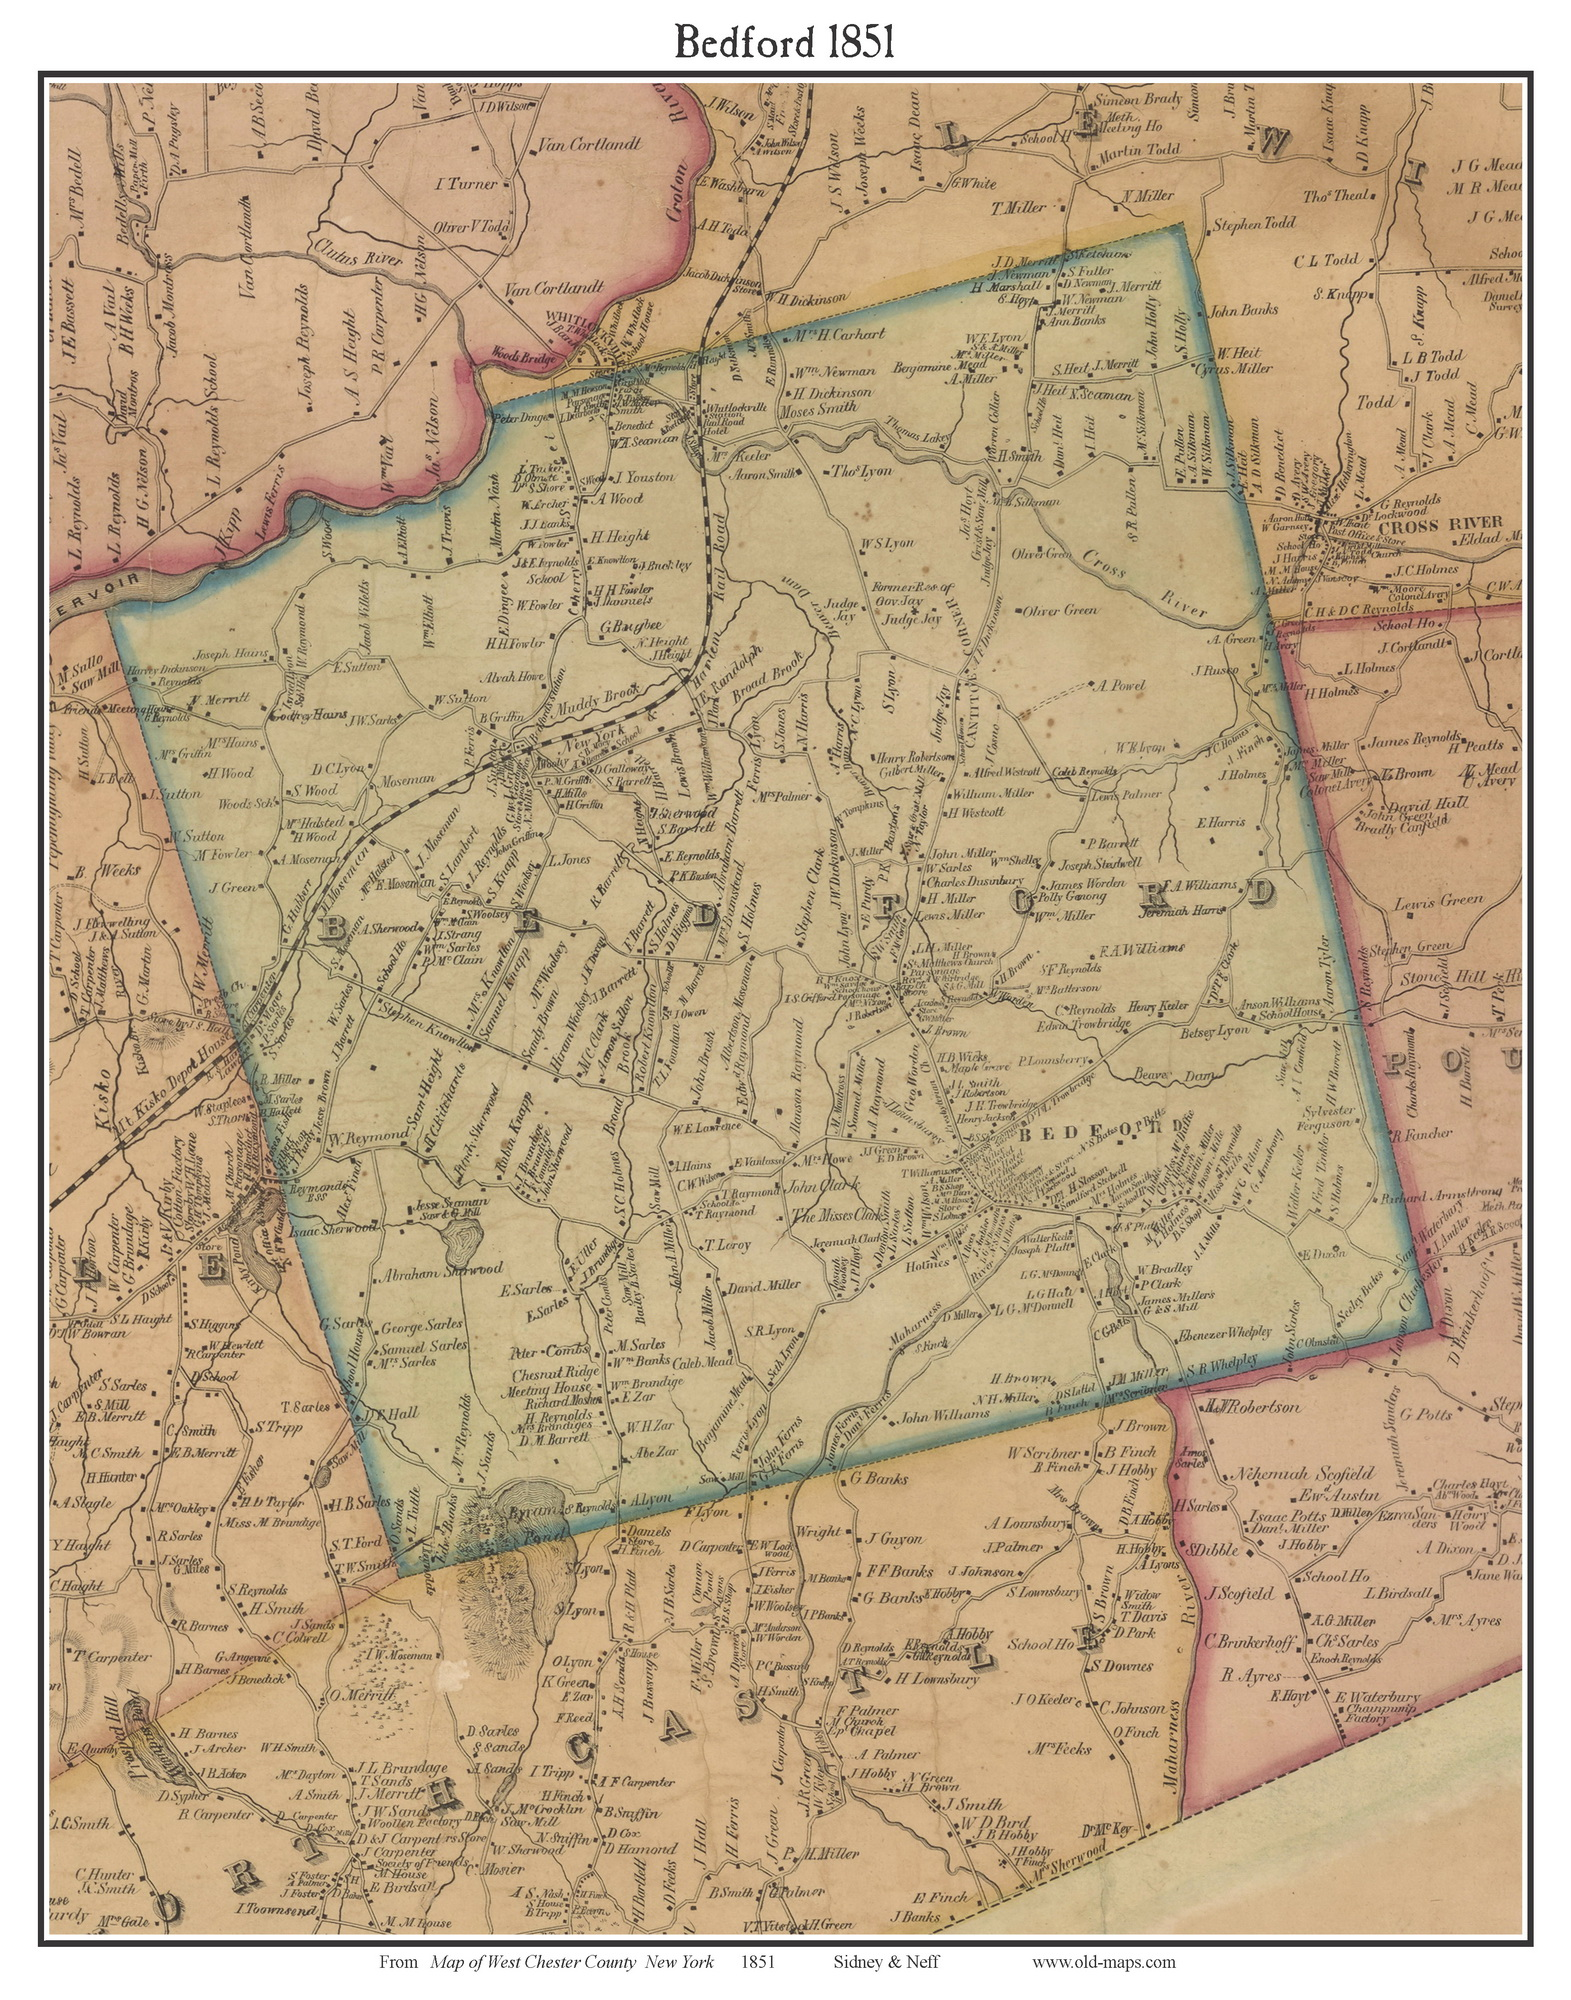 Bedford New York 1851 Old Town Map Custom Print West Chester